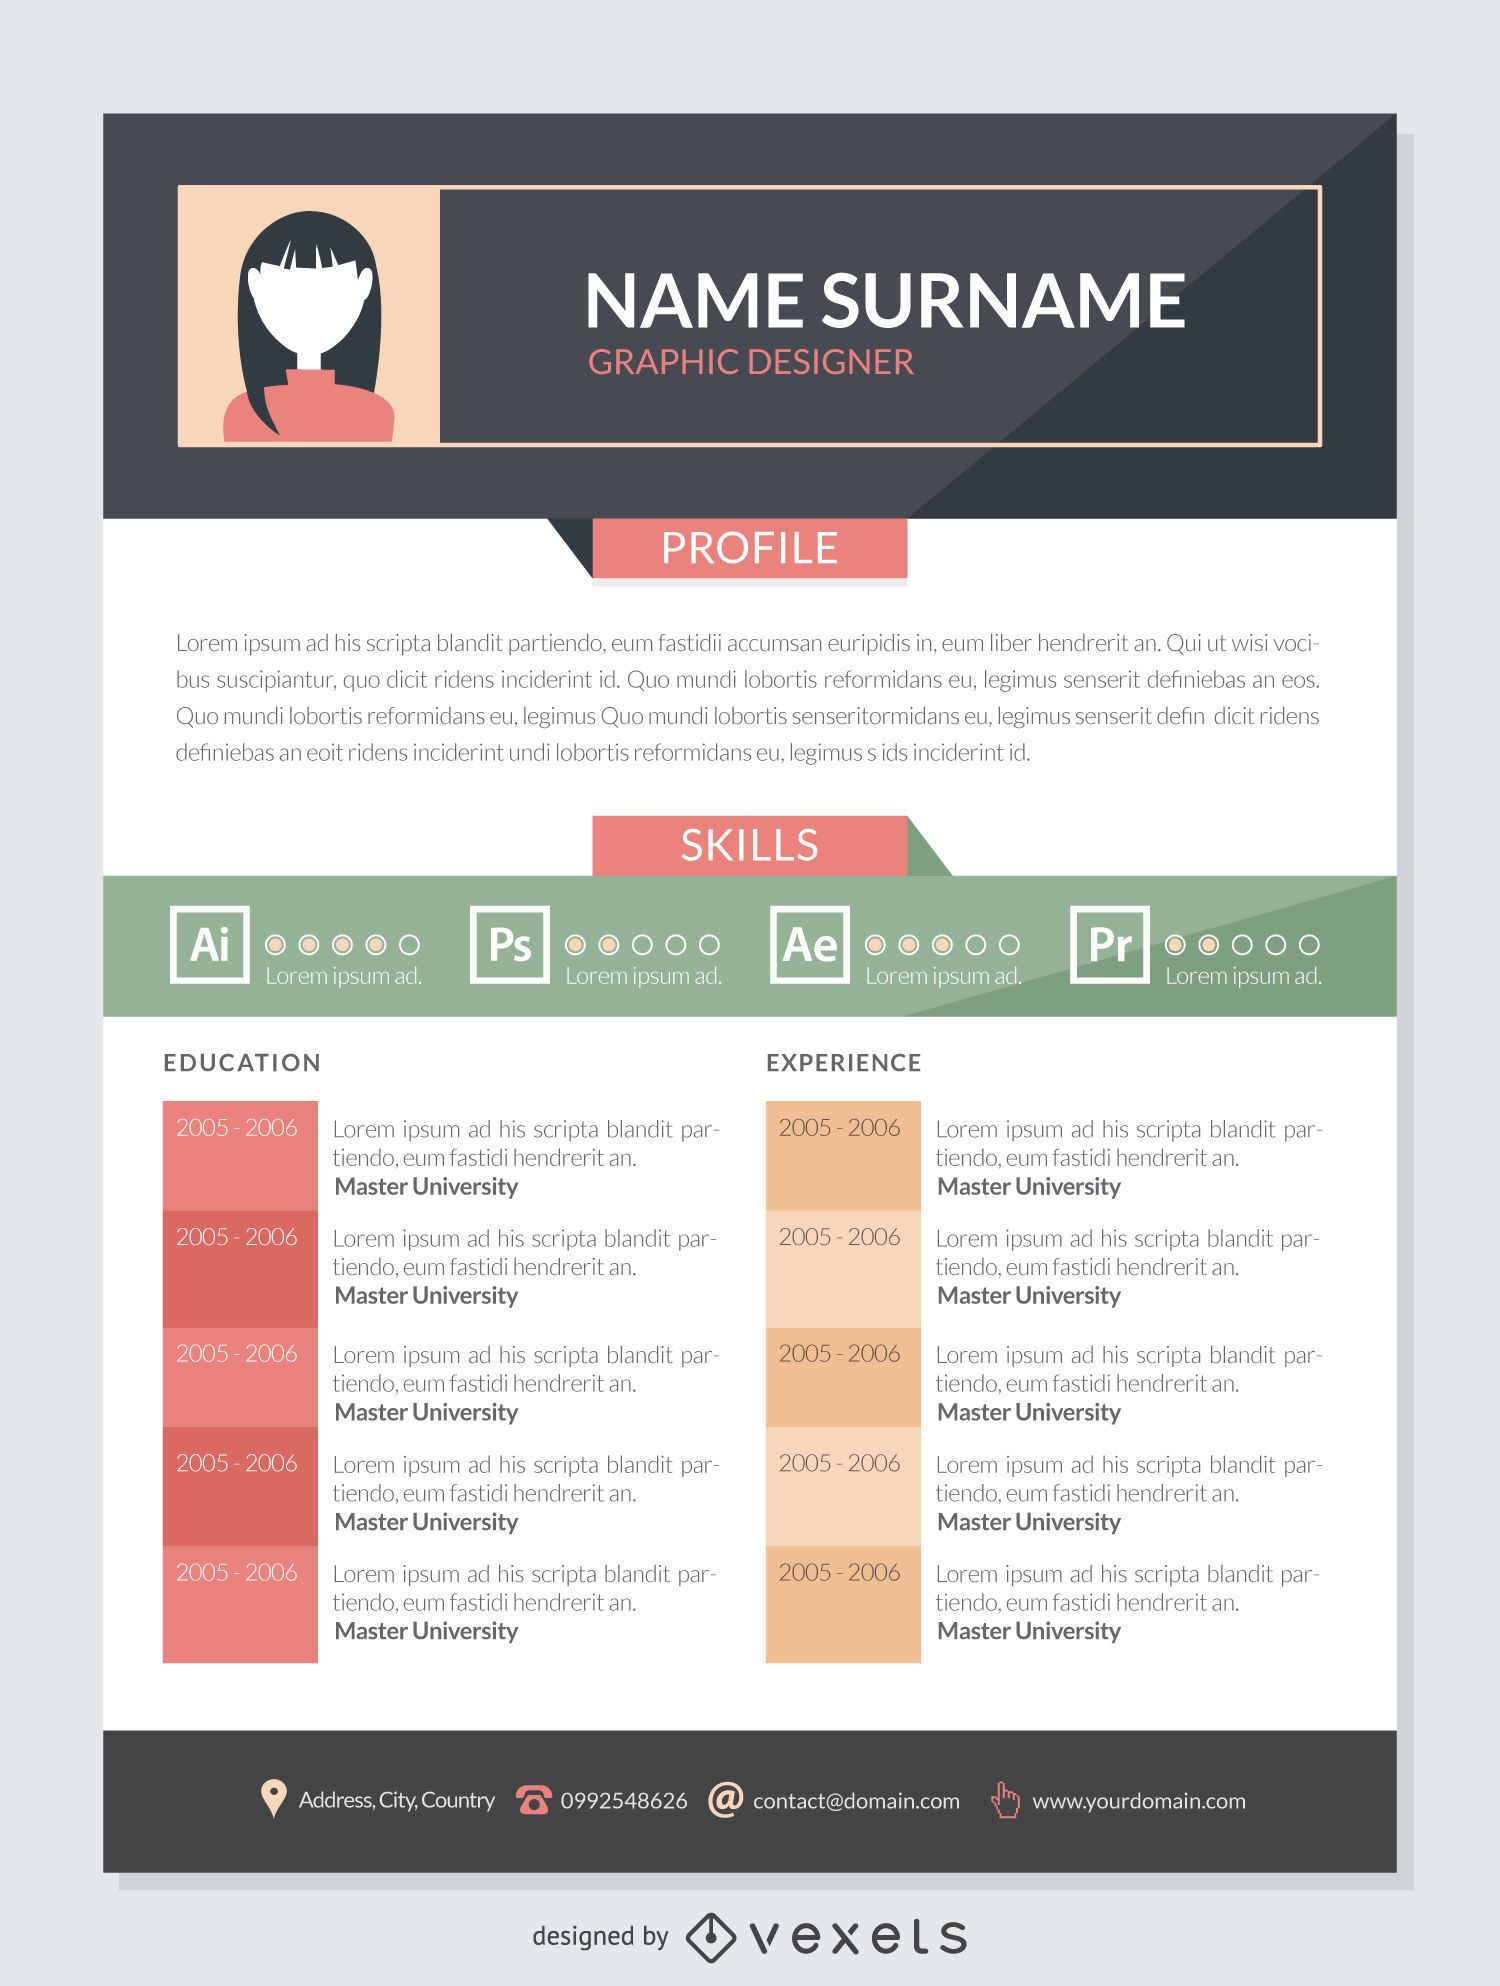 graphic designer resume mockup template